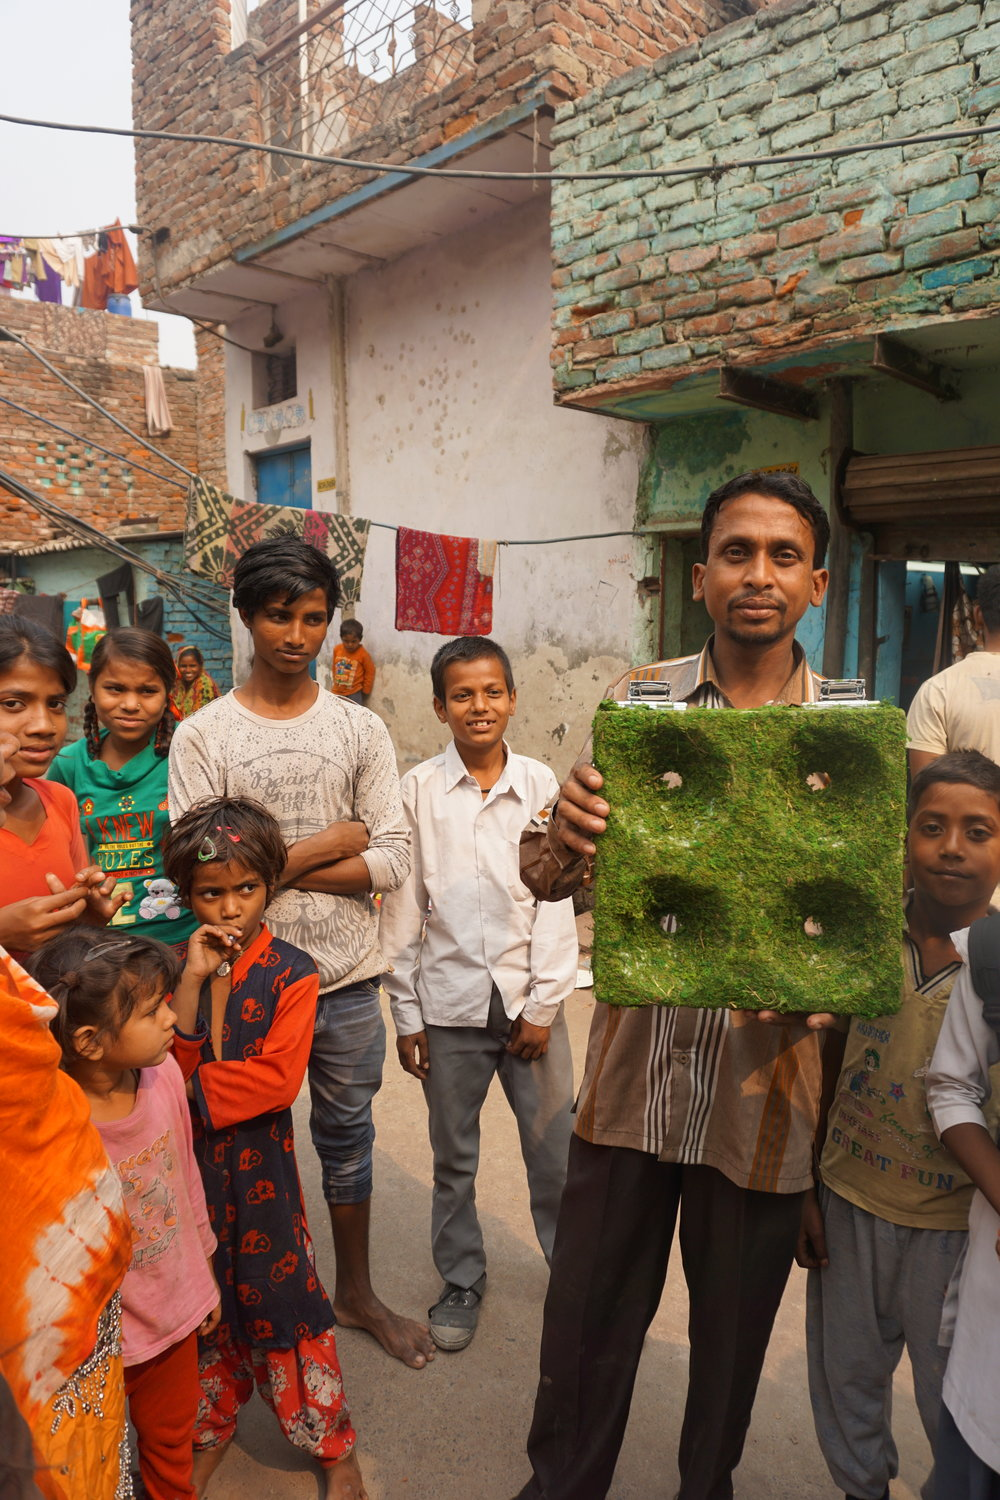 Photo by Gina Ciancone. Used with permission from the Gazipur community of Delhi, India.